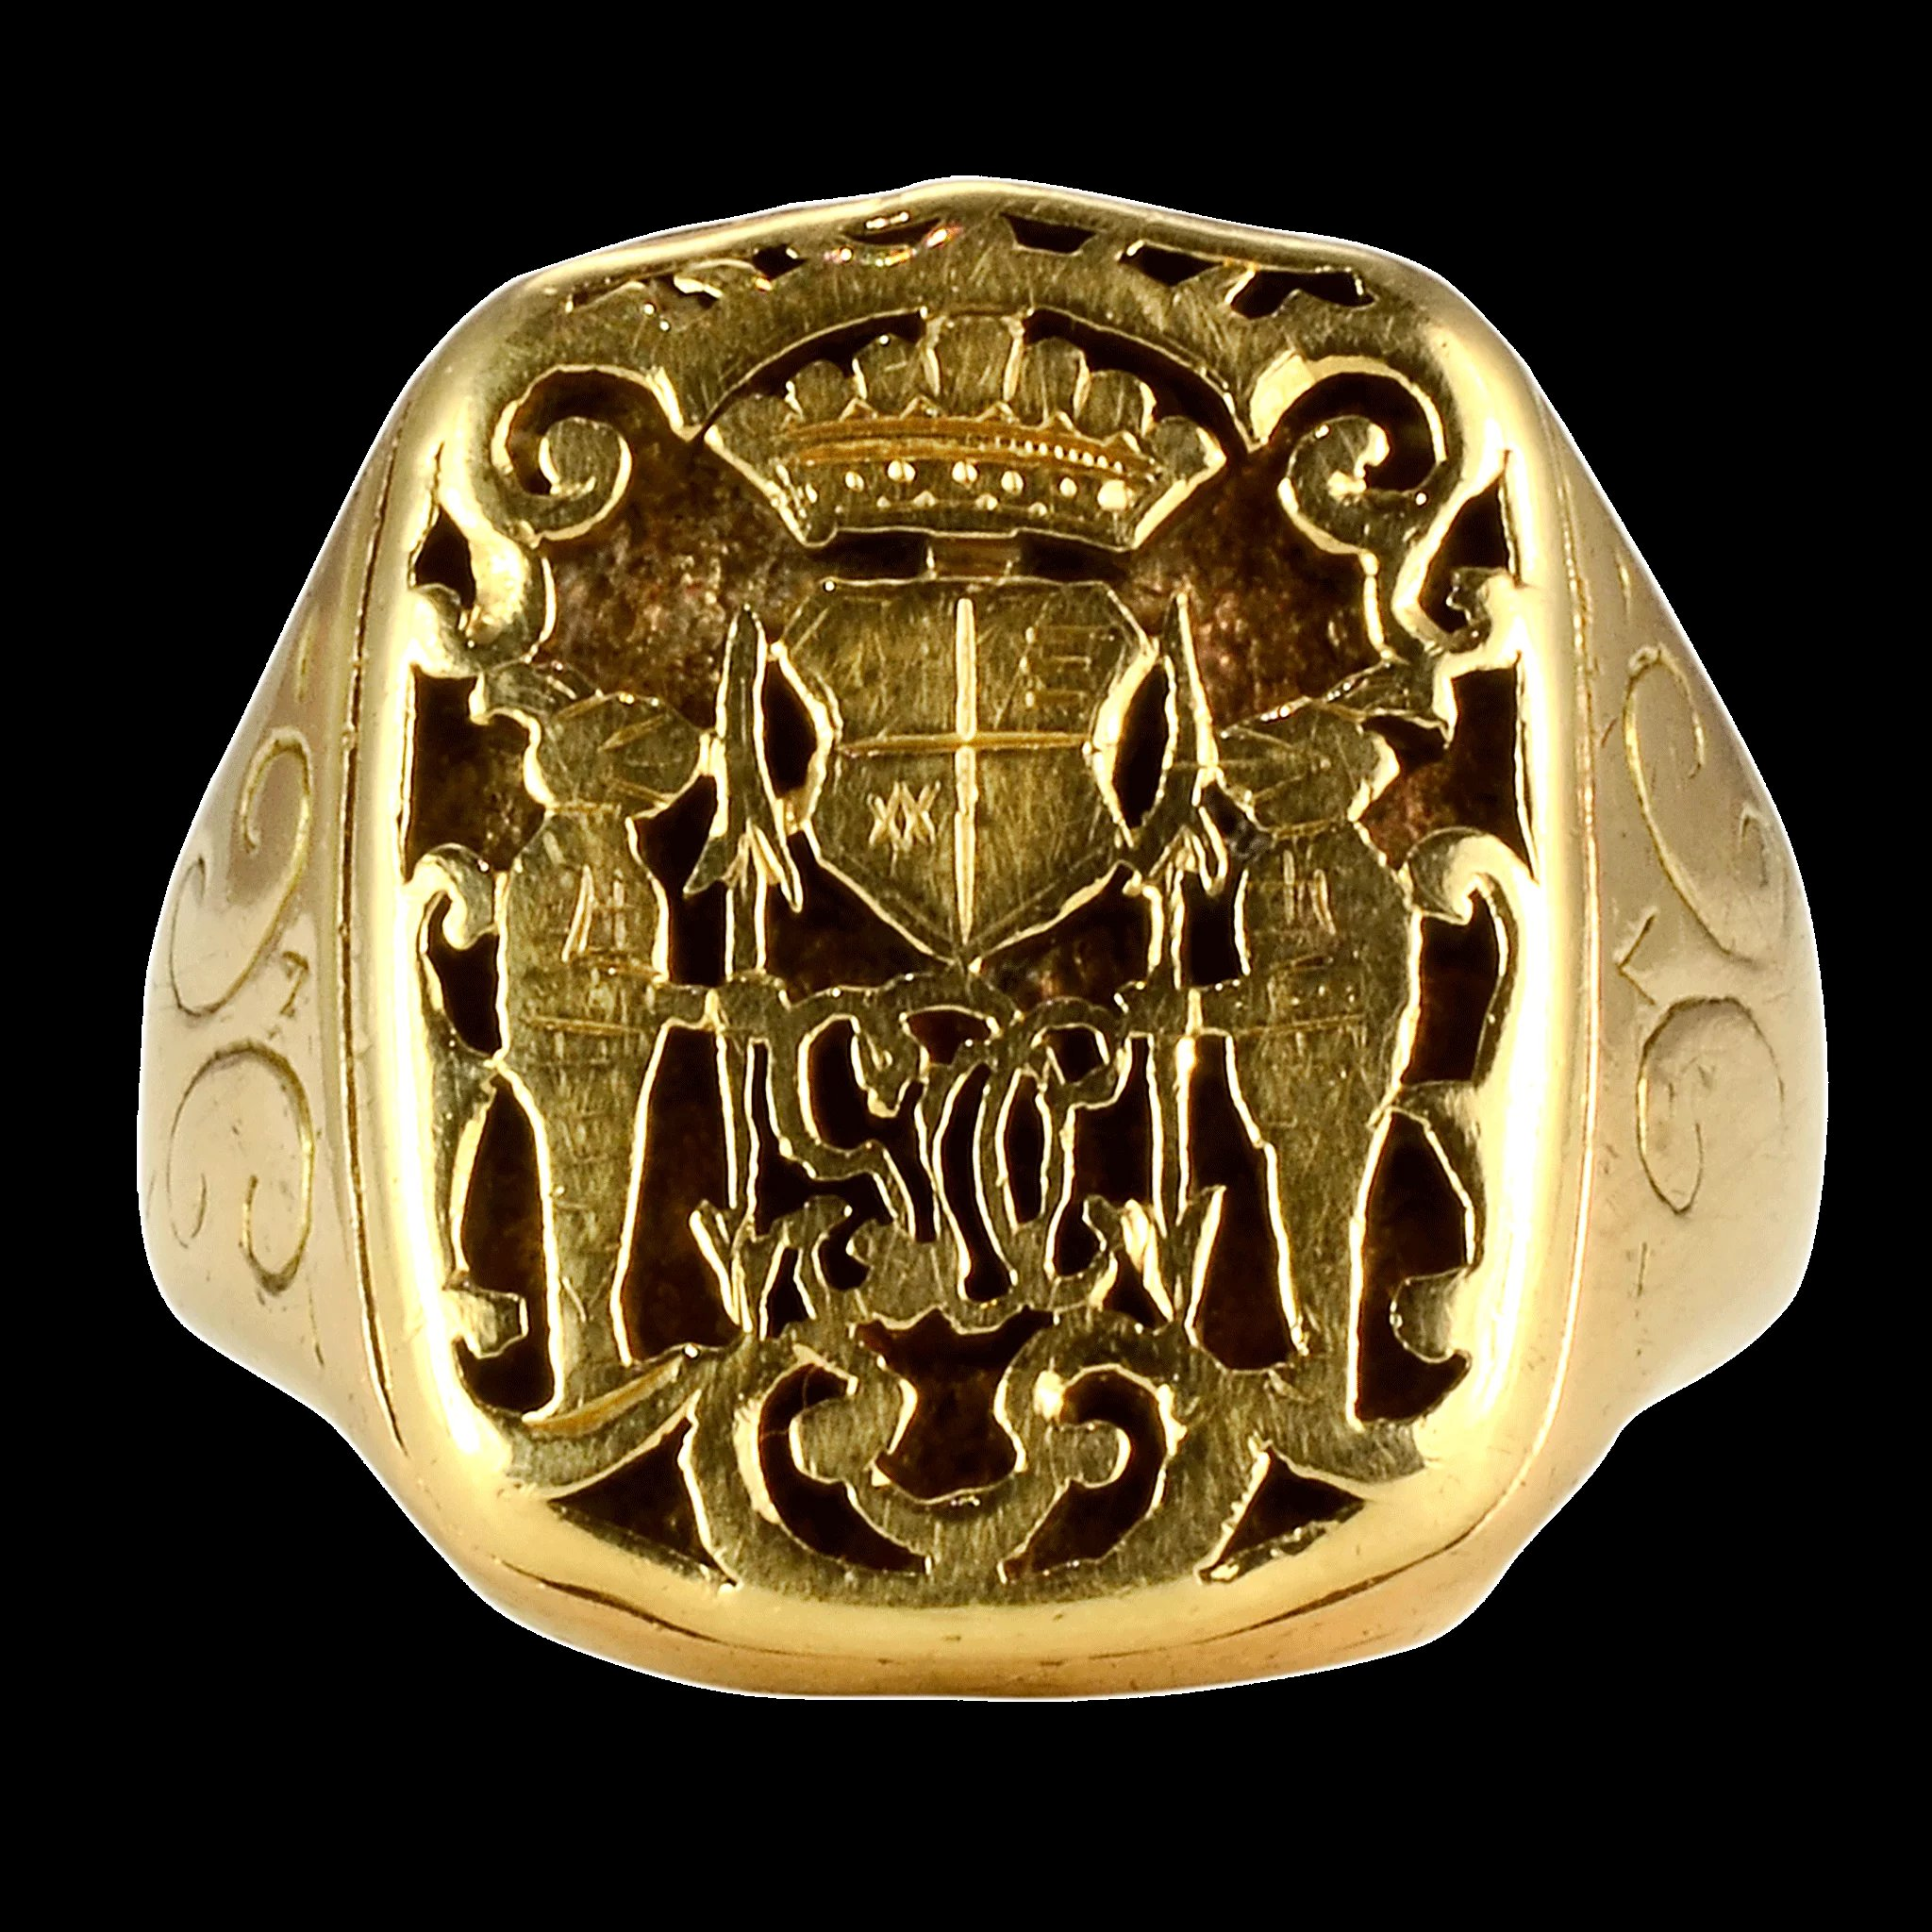 gold rings royal sailor crest ring product en twobrothers marine anel